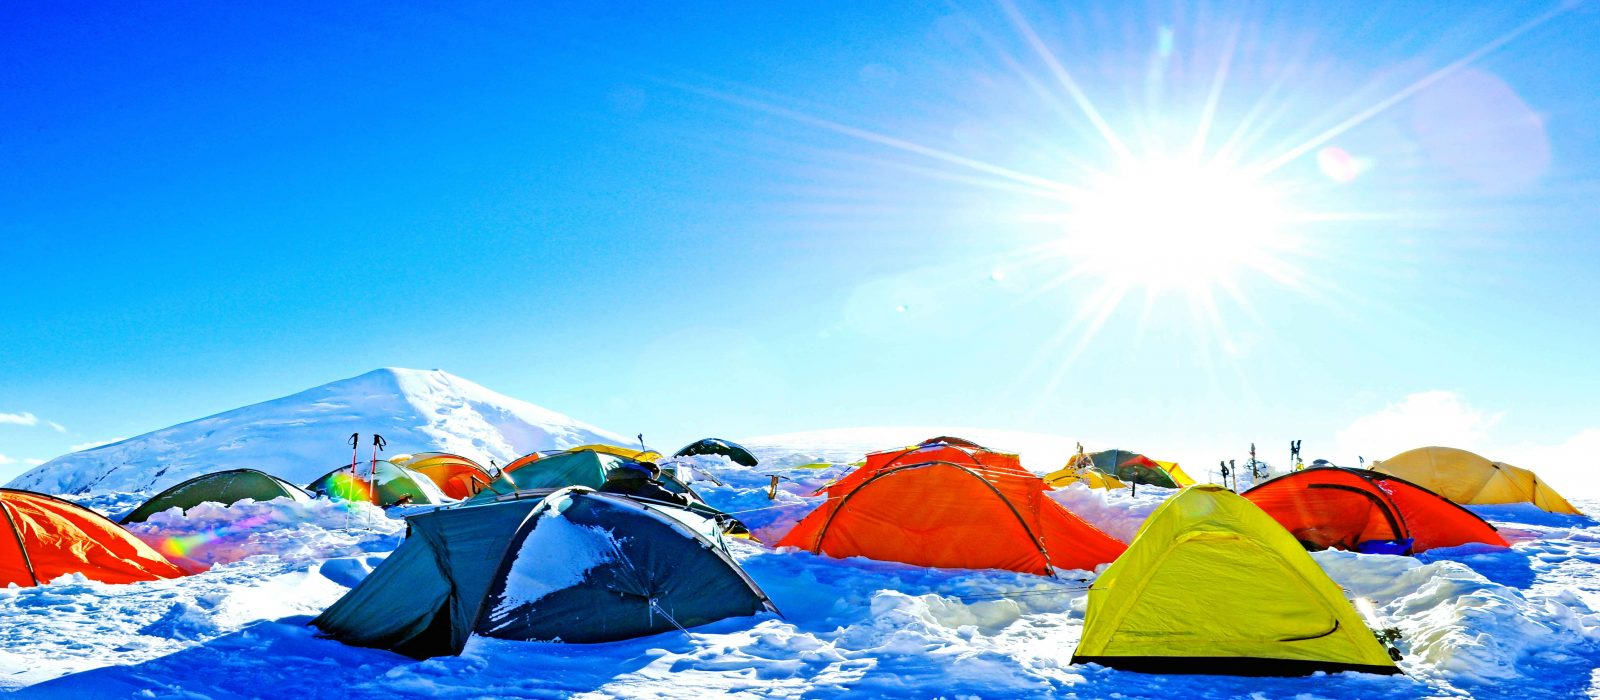 camping-in-mountain-of-nepal